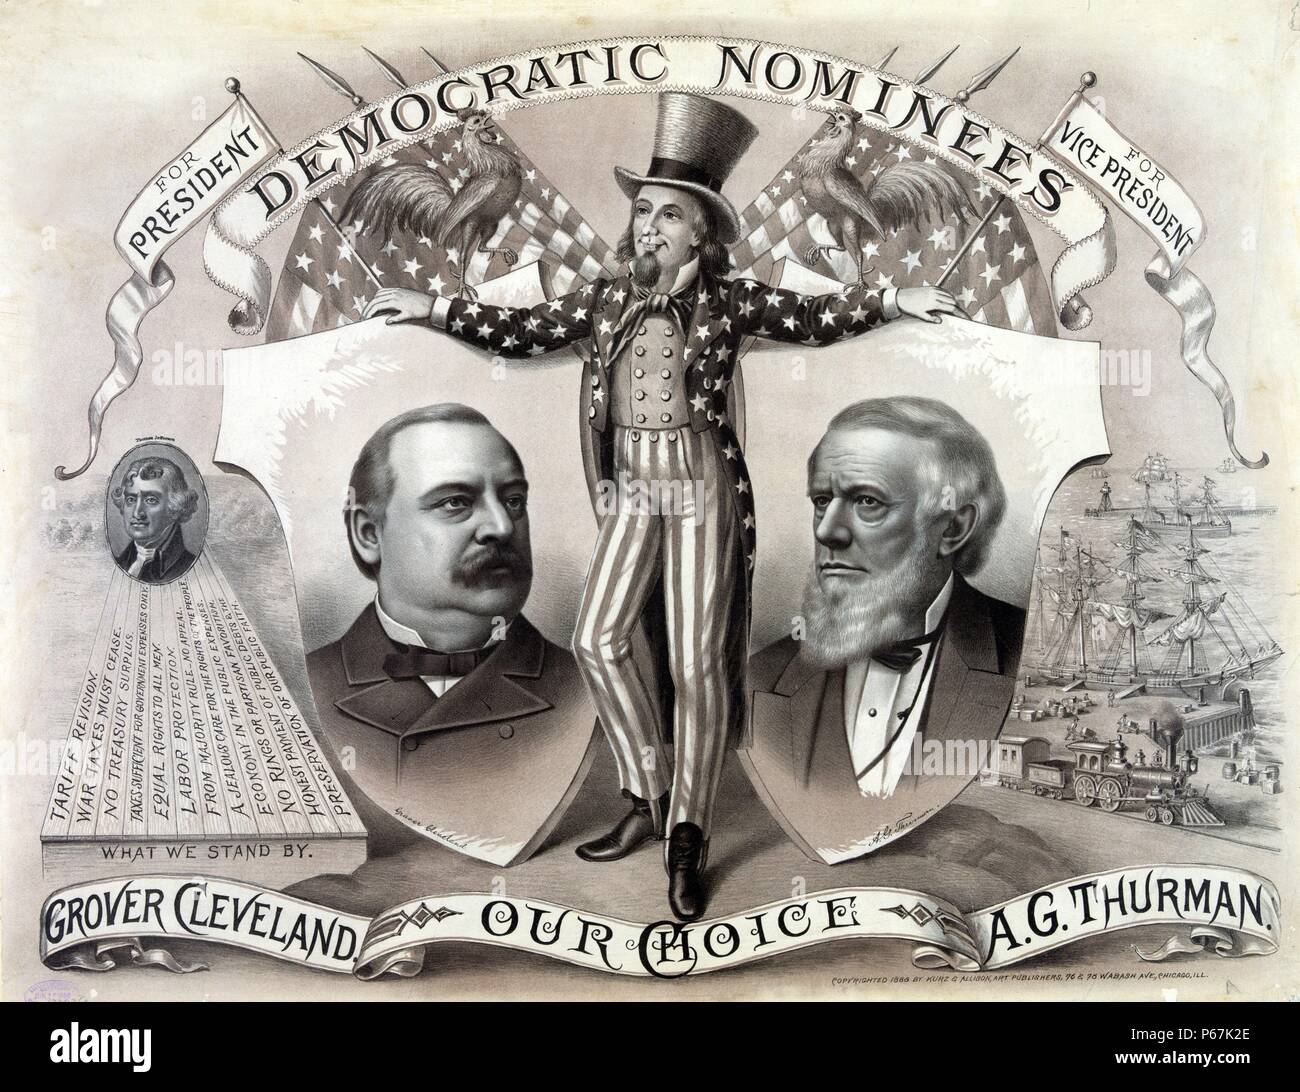 Our choice, Grover Cleveland, A.G. Thurman. Democratic nominees, for president [and] for vice president' Uncle Sam standing with large shields on which are portraits of Grover Cleveland and Allen G. Thurman. Includes Democratic party platform, a cameo portrait of Thomas Jefferson, a dock scene with ship and railroad, and roosters--a symbol of the Democratic party before the donkey. - Stock Image